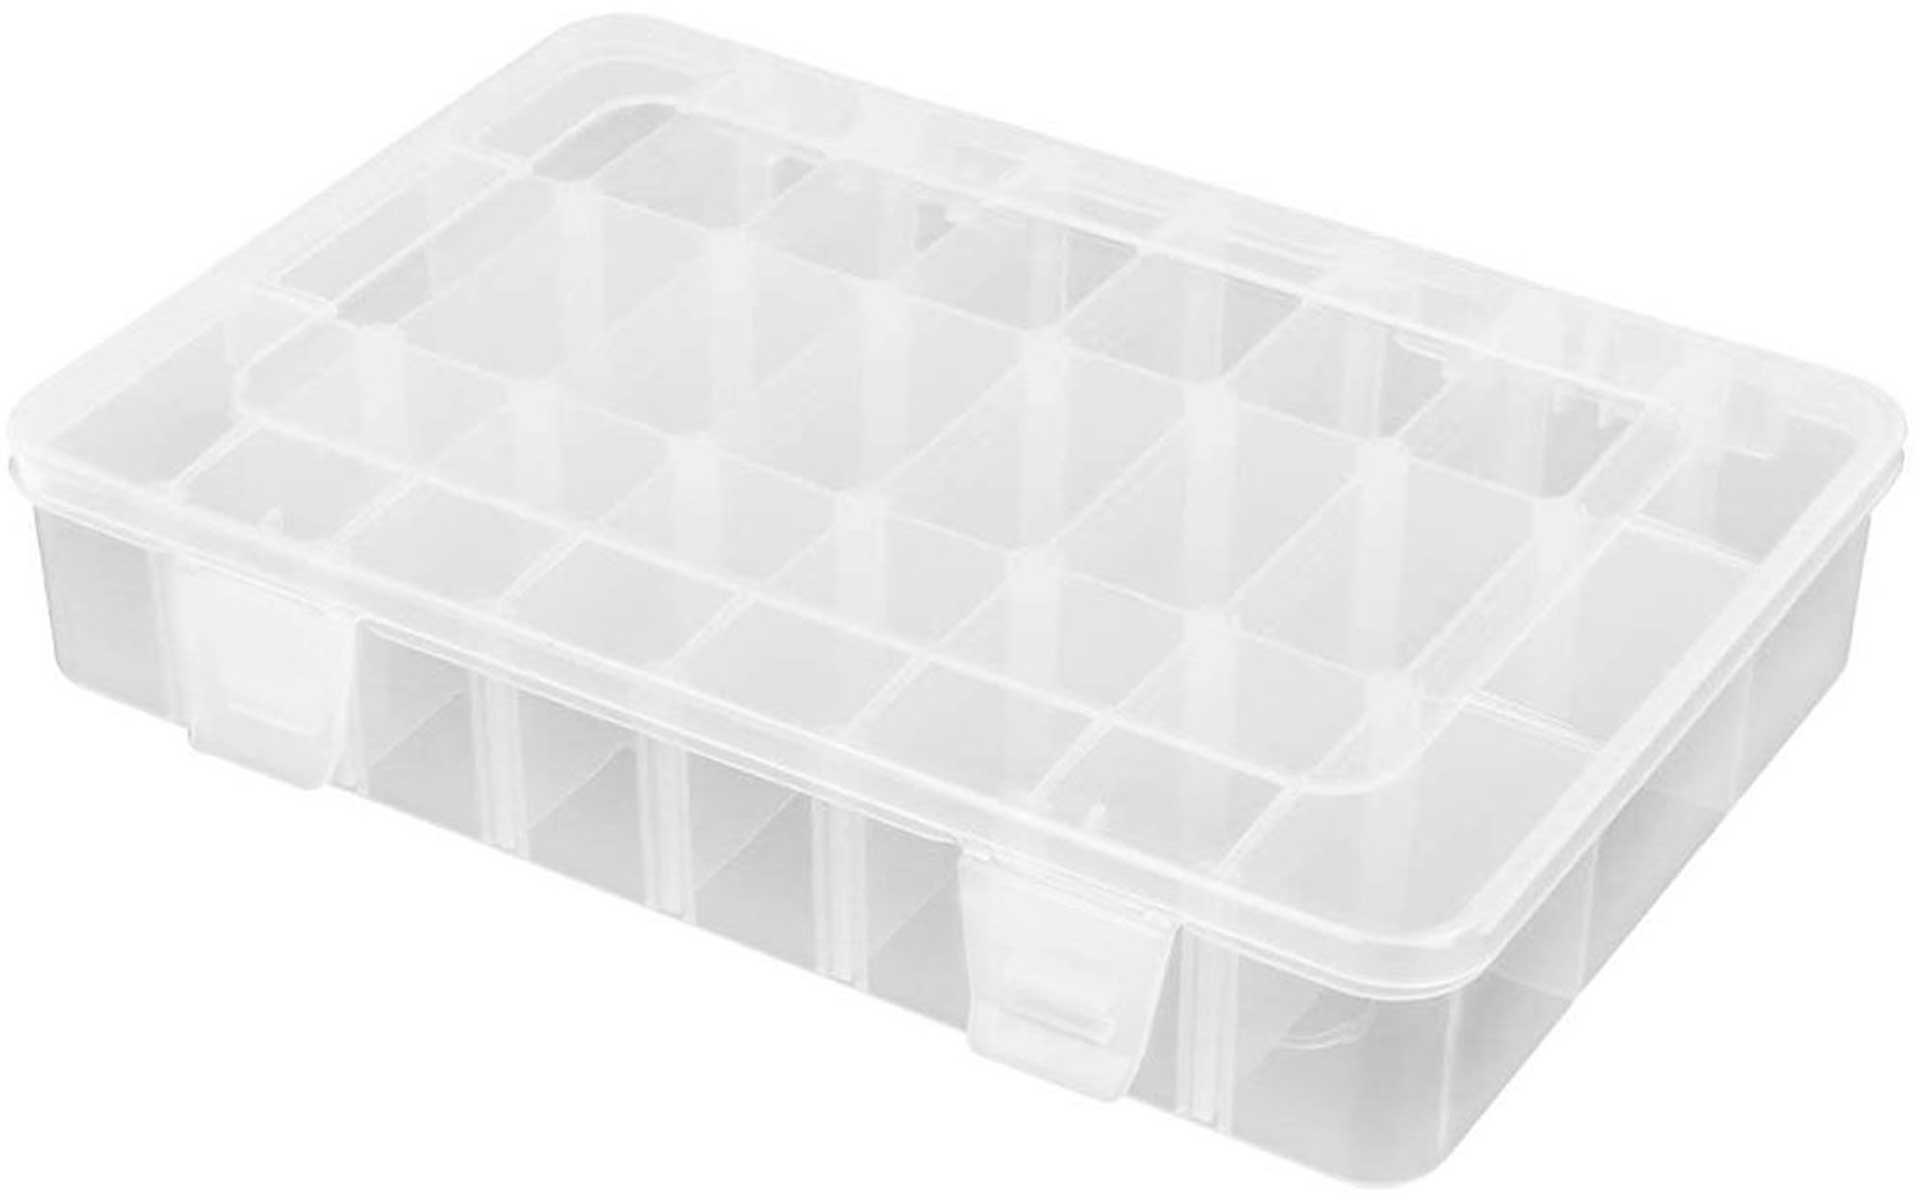 ROBITRONIC ASSORTMENT BOX 24 COMPARTMENTS 202X137X40MM VARIABLE